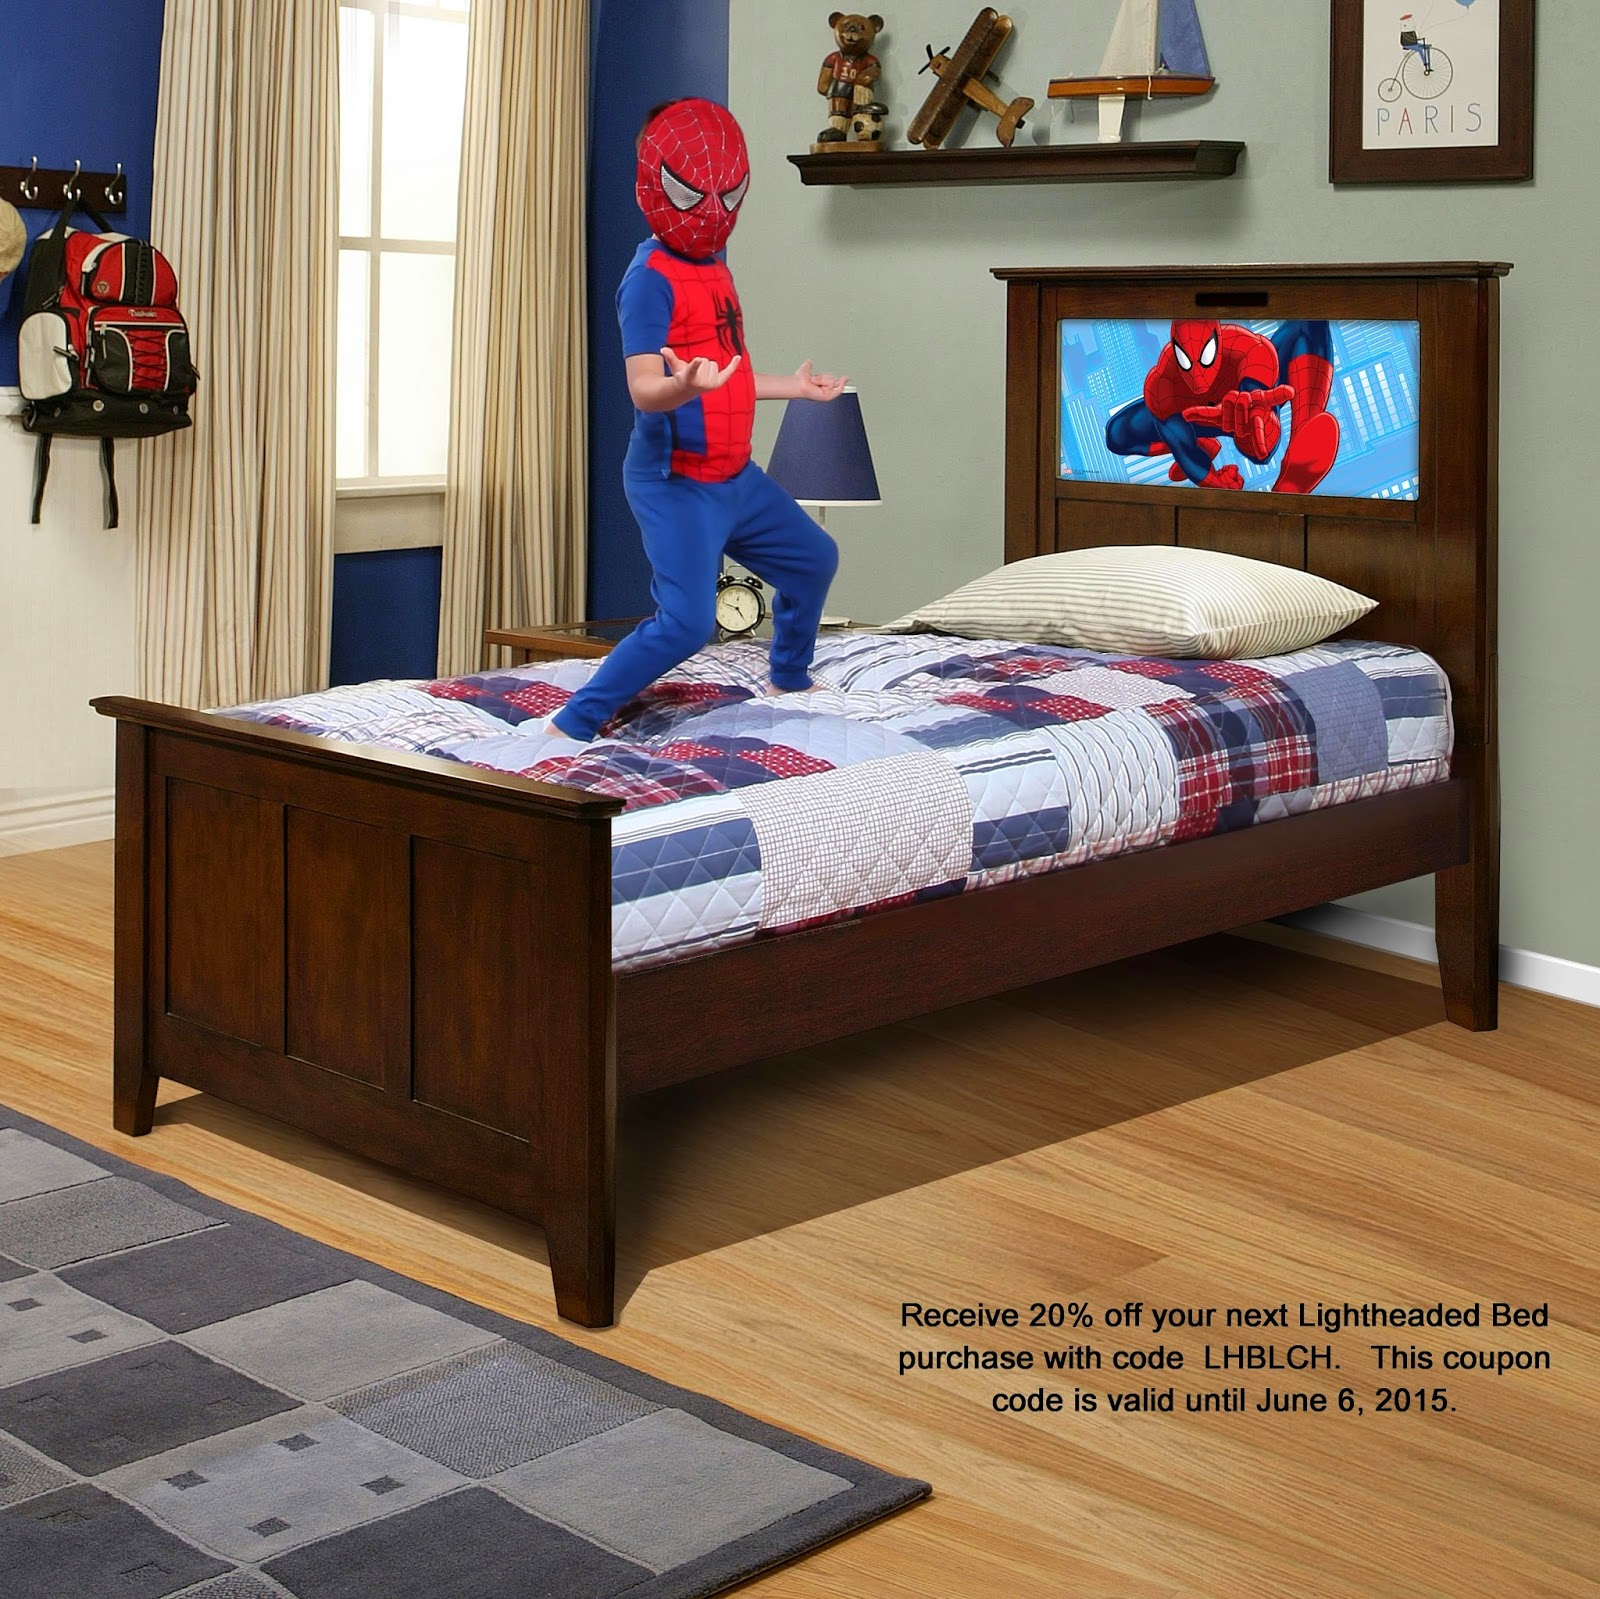 Luxury Frozen light up headboard Lightheaded beds Marvel Avengers